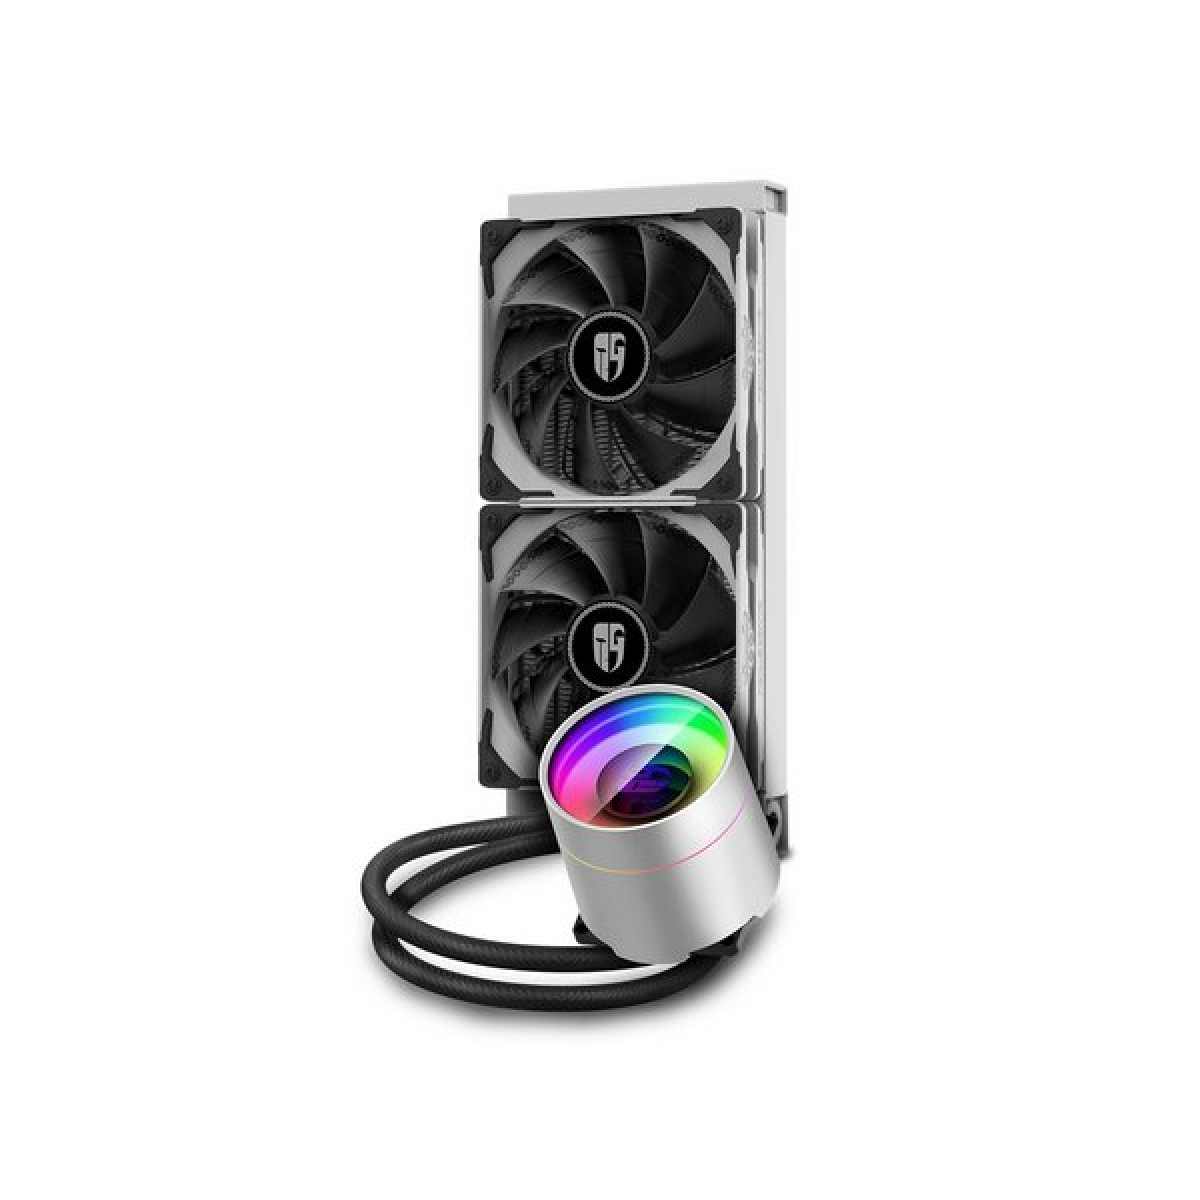 Water Cooler Gamer Storm DeepCool Castle 240 EX WH, ARGB, Intel-AMD, White, DP-GS-H12W-CSL240EXWH